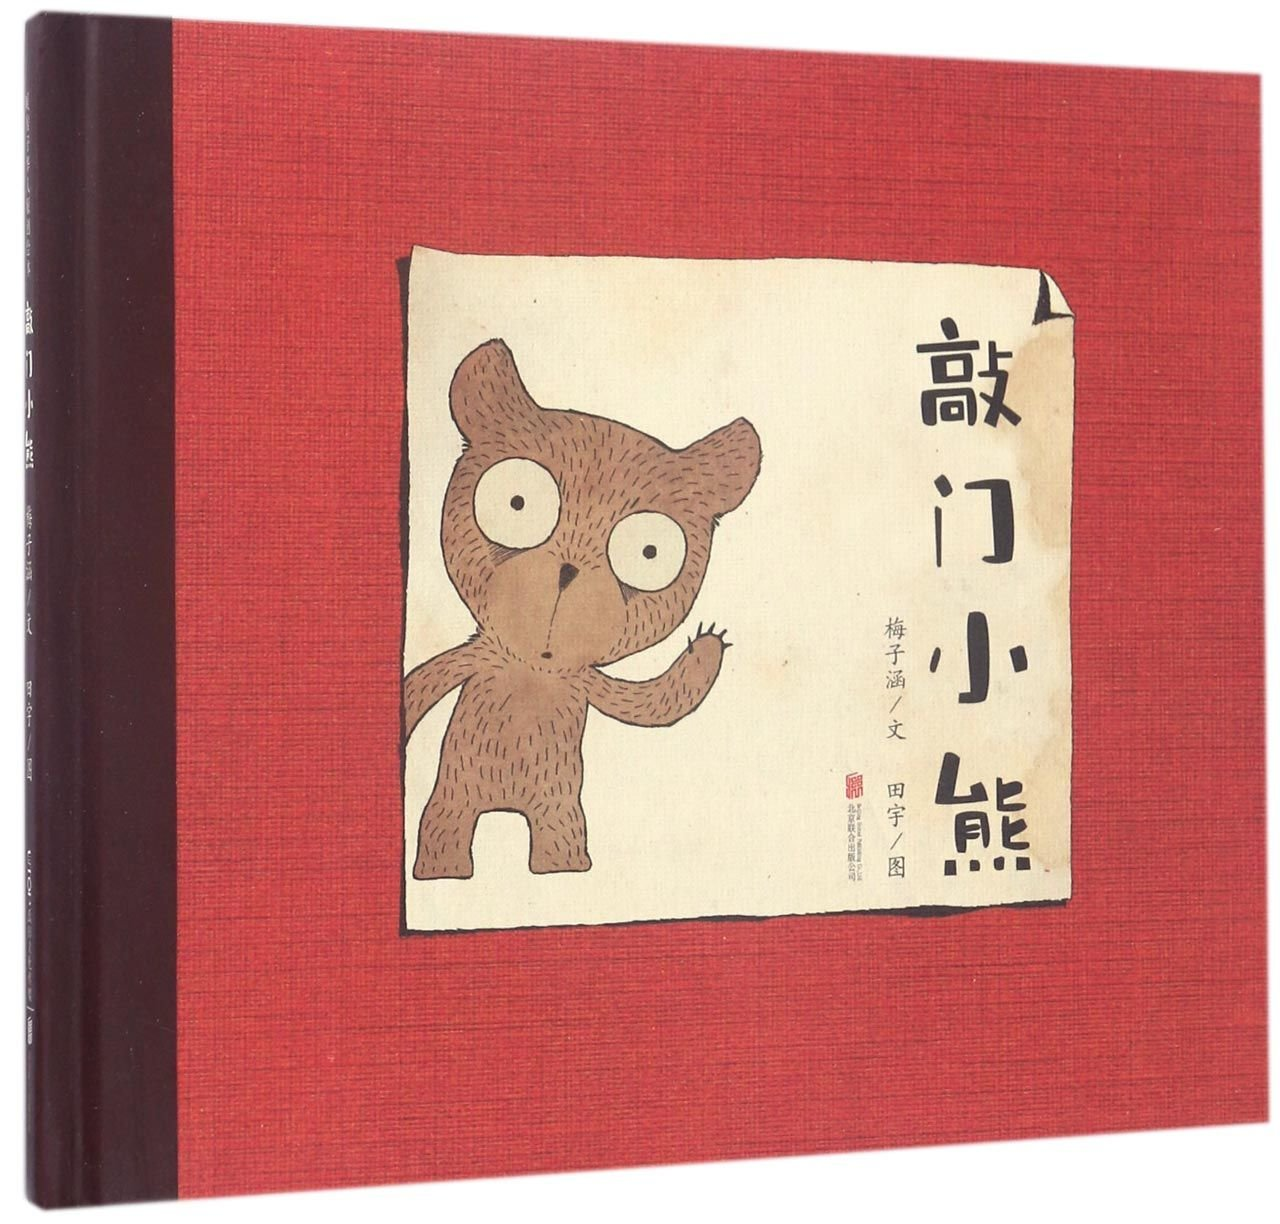 Download Knock Knock the Bear (Hardcover) (Chinese Edition) pdf epub